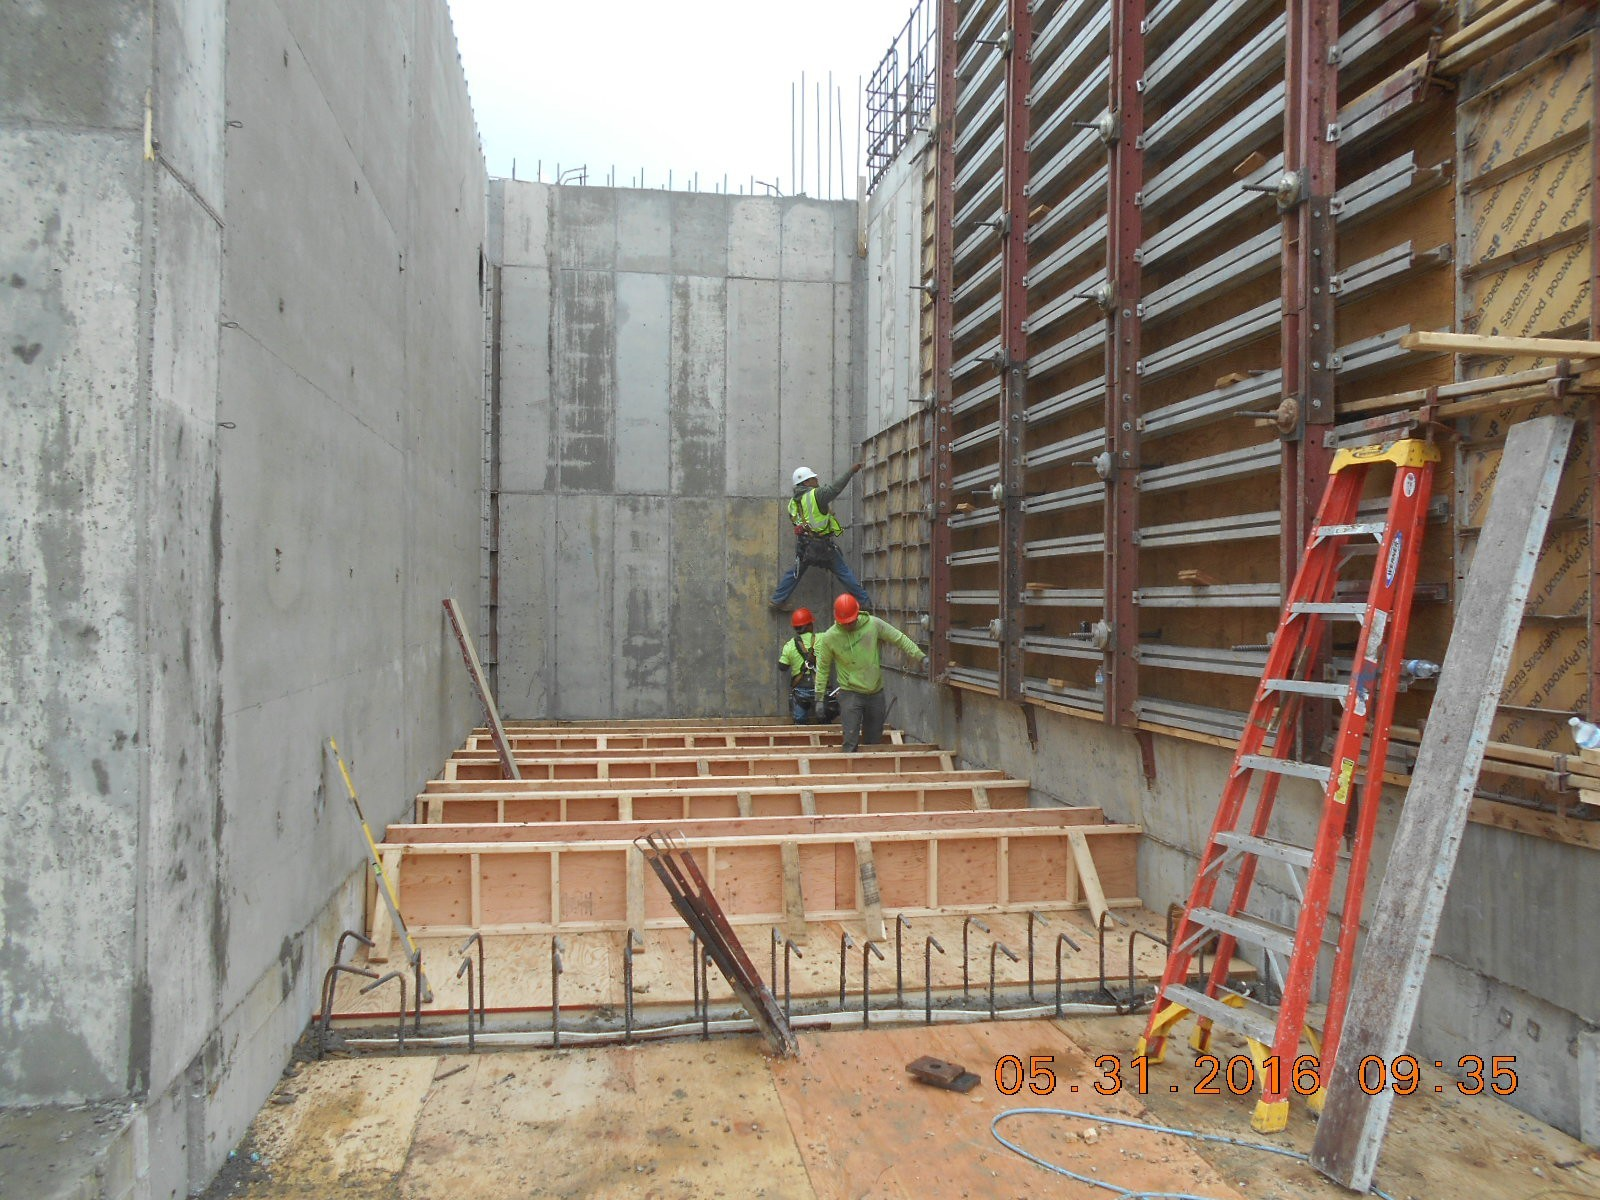 JTJ removing forms from the north wall of the Clarifier.